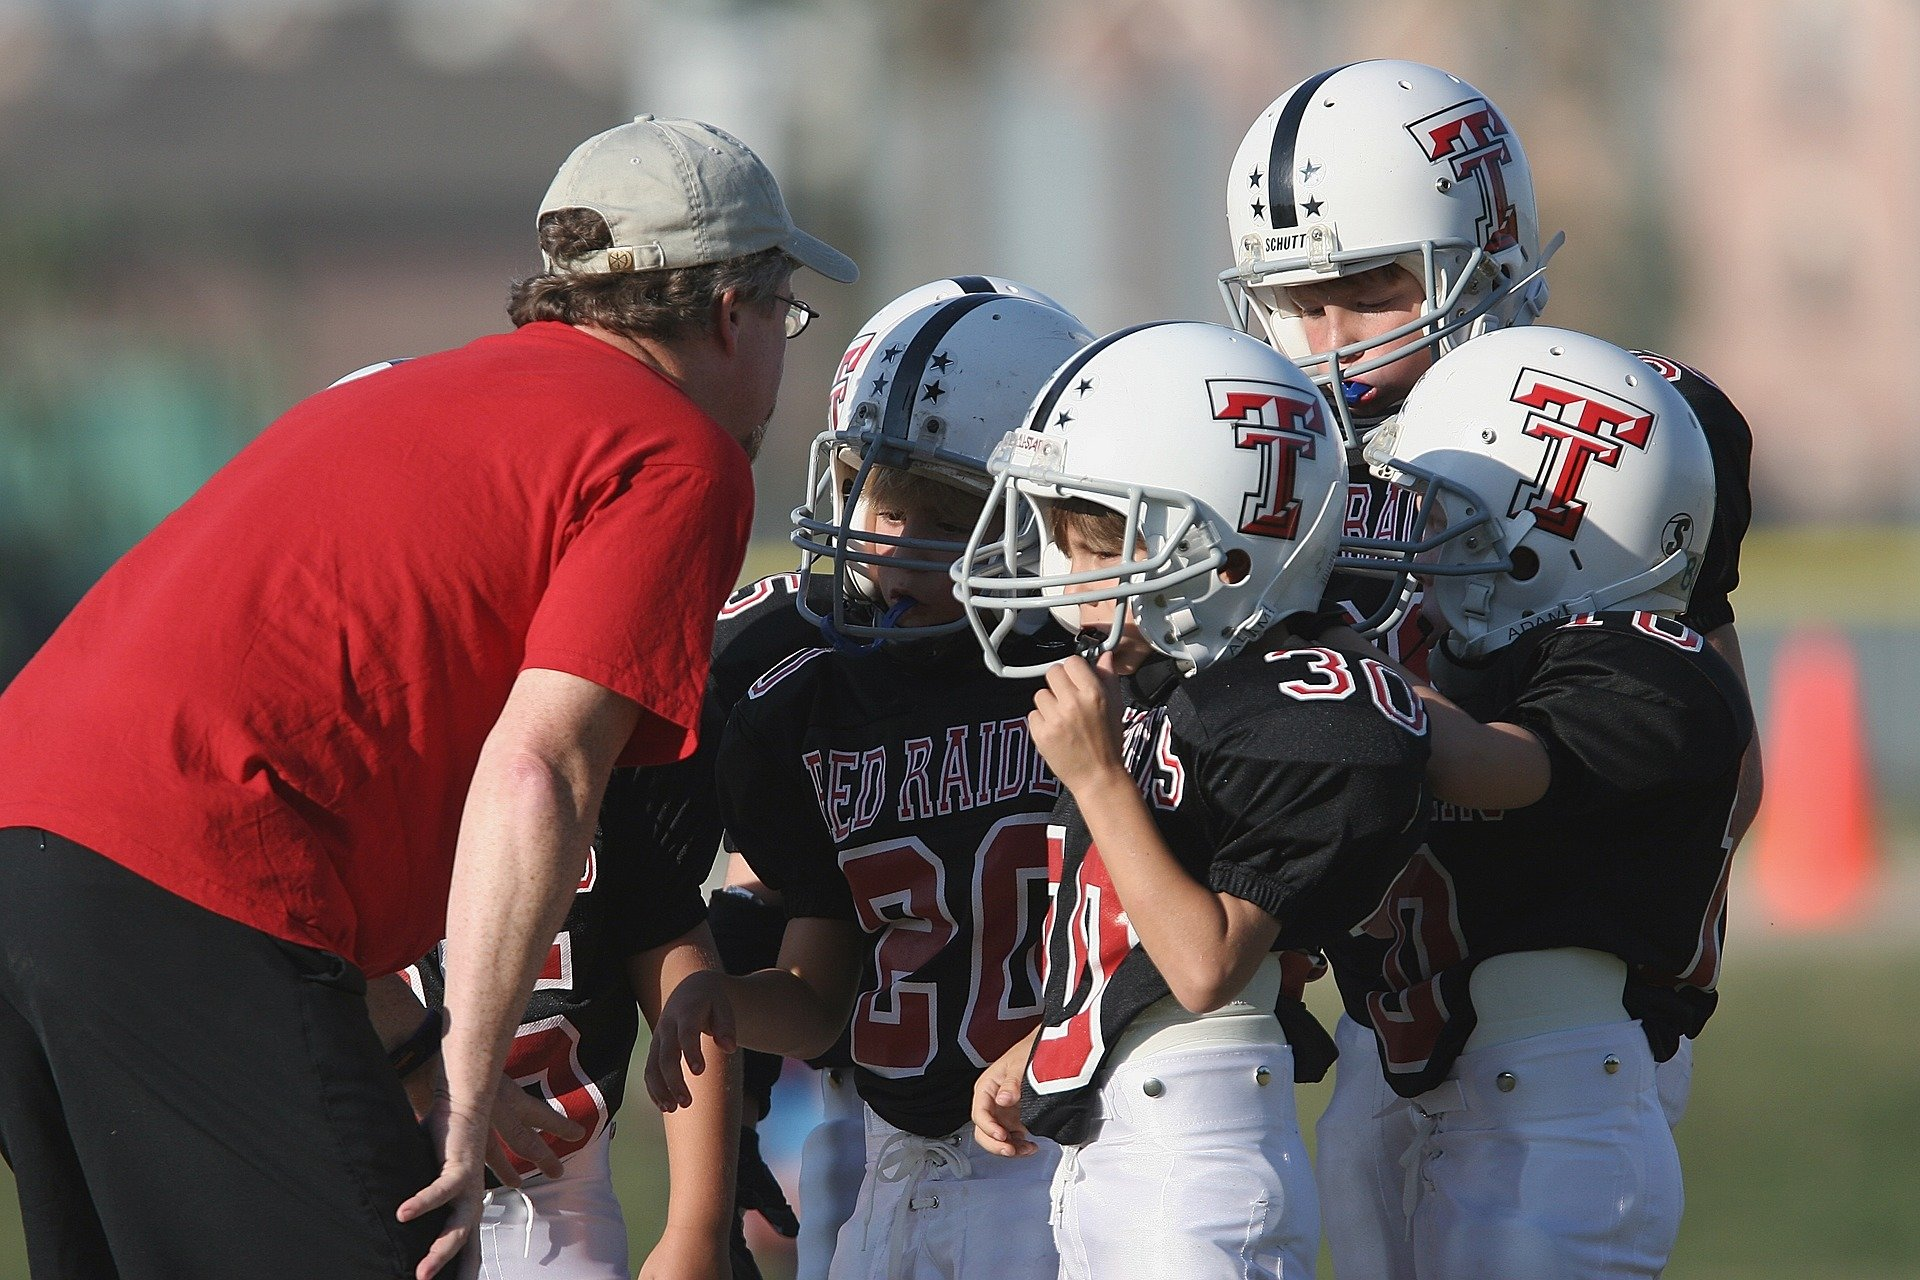 Researchers suggest ways to reduce head impacts in youth football